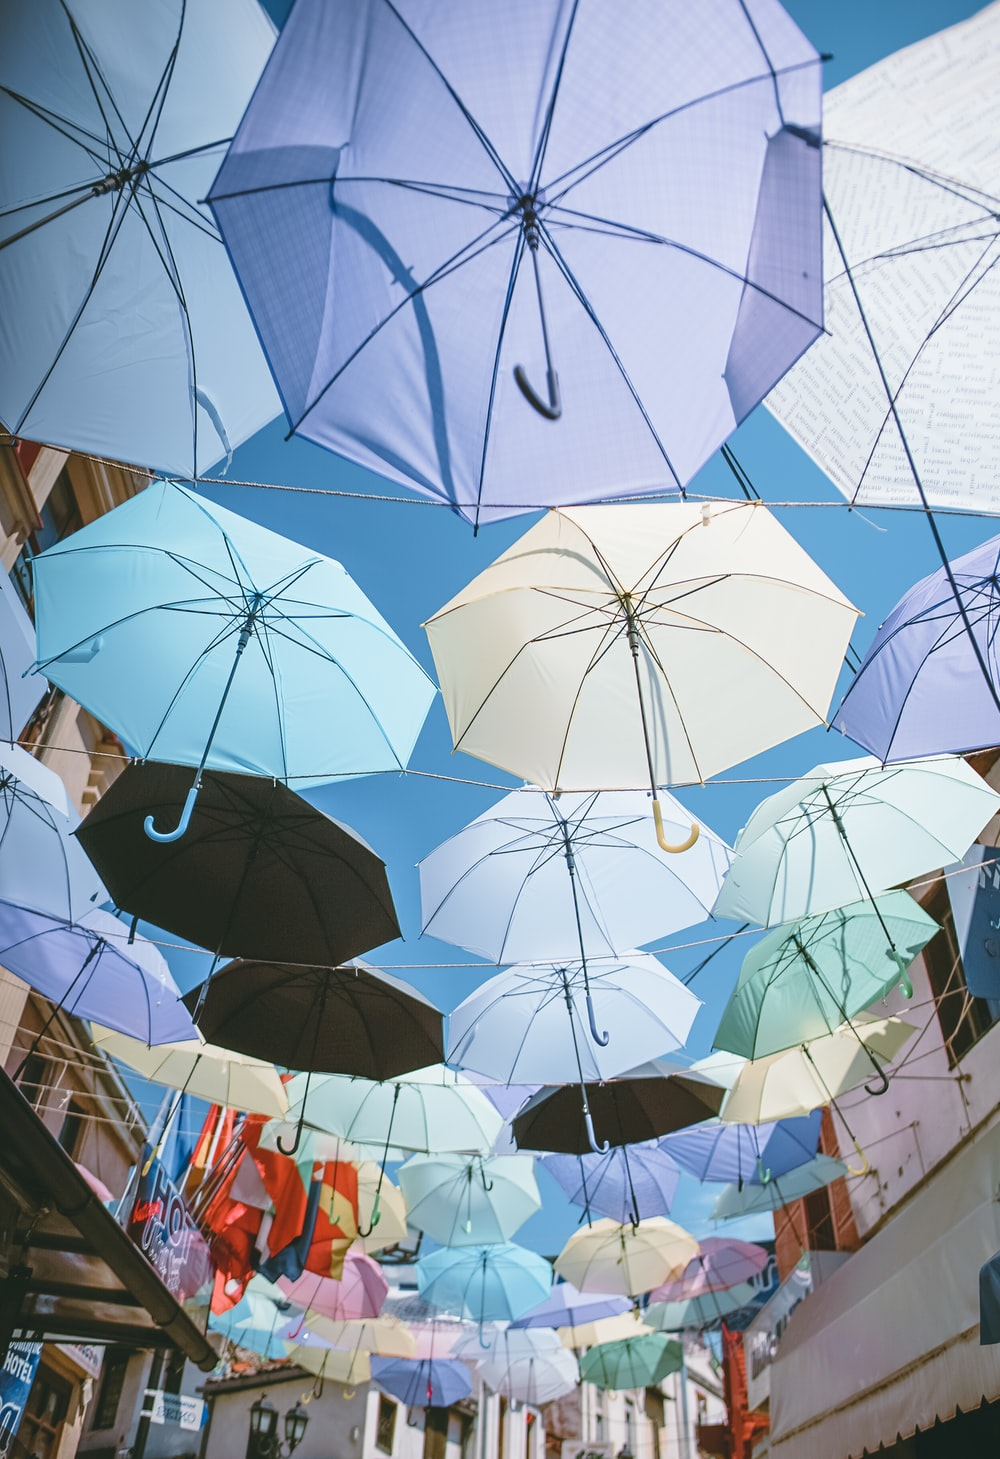 assorted-color umbrellas hanged on wires under blue sky during daytime